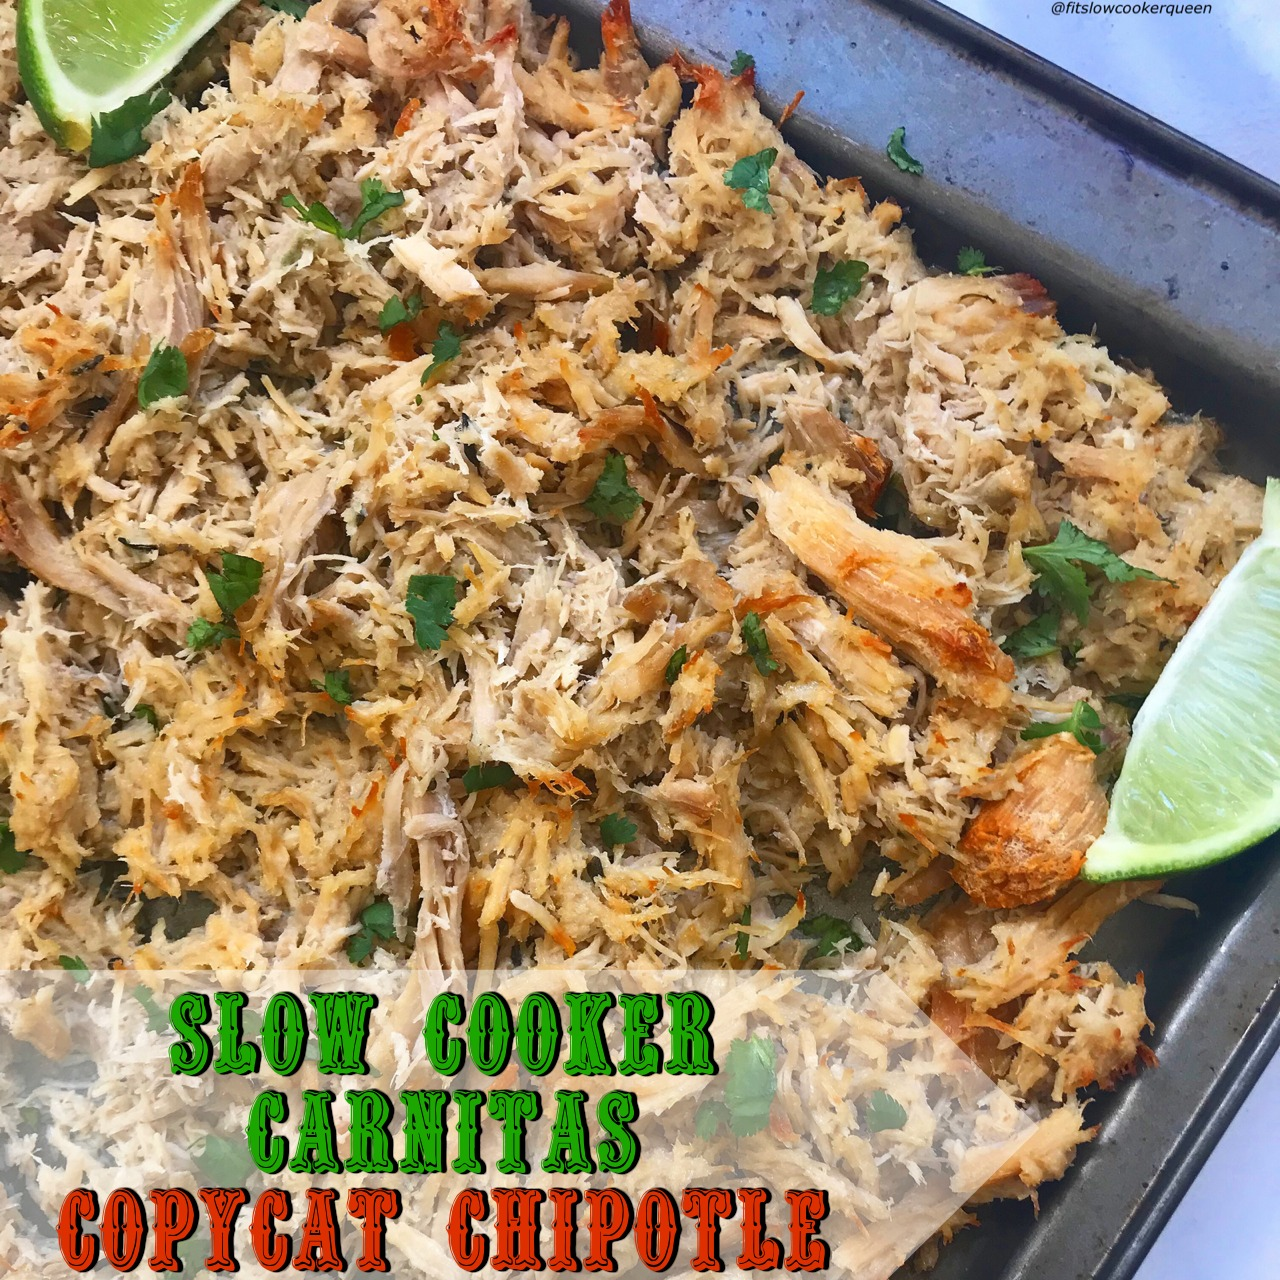 This is a slow cooker copycat of Chipotle's carnitas recipe. The end result is succulent shredded pork that's then broiled in the oven until crisp. Being low-carb, paleo, whole30, keto and more, you can use this carnitas meat in so many ways.